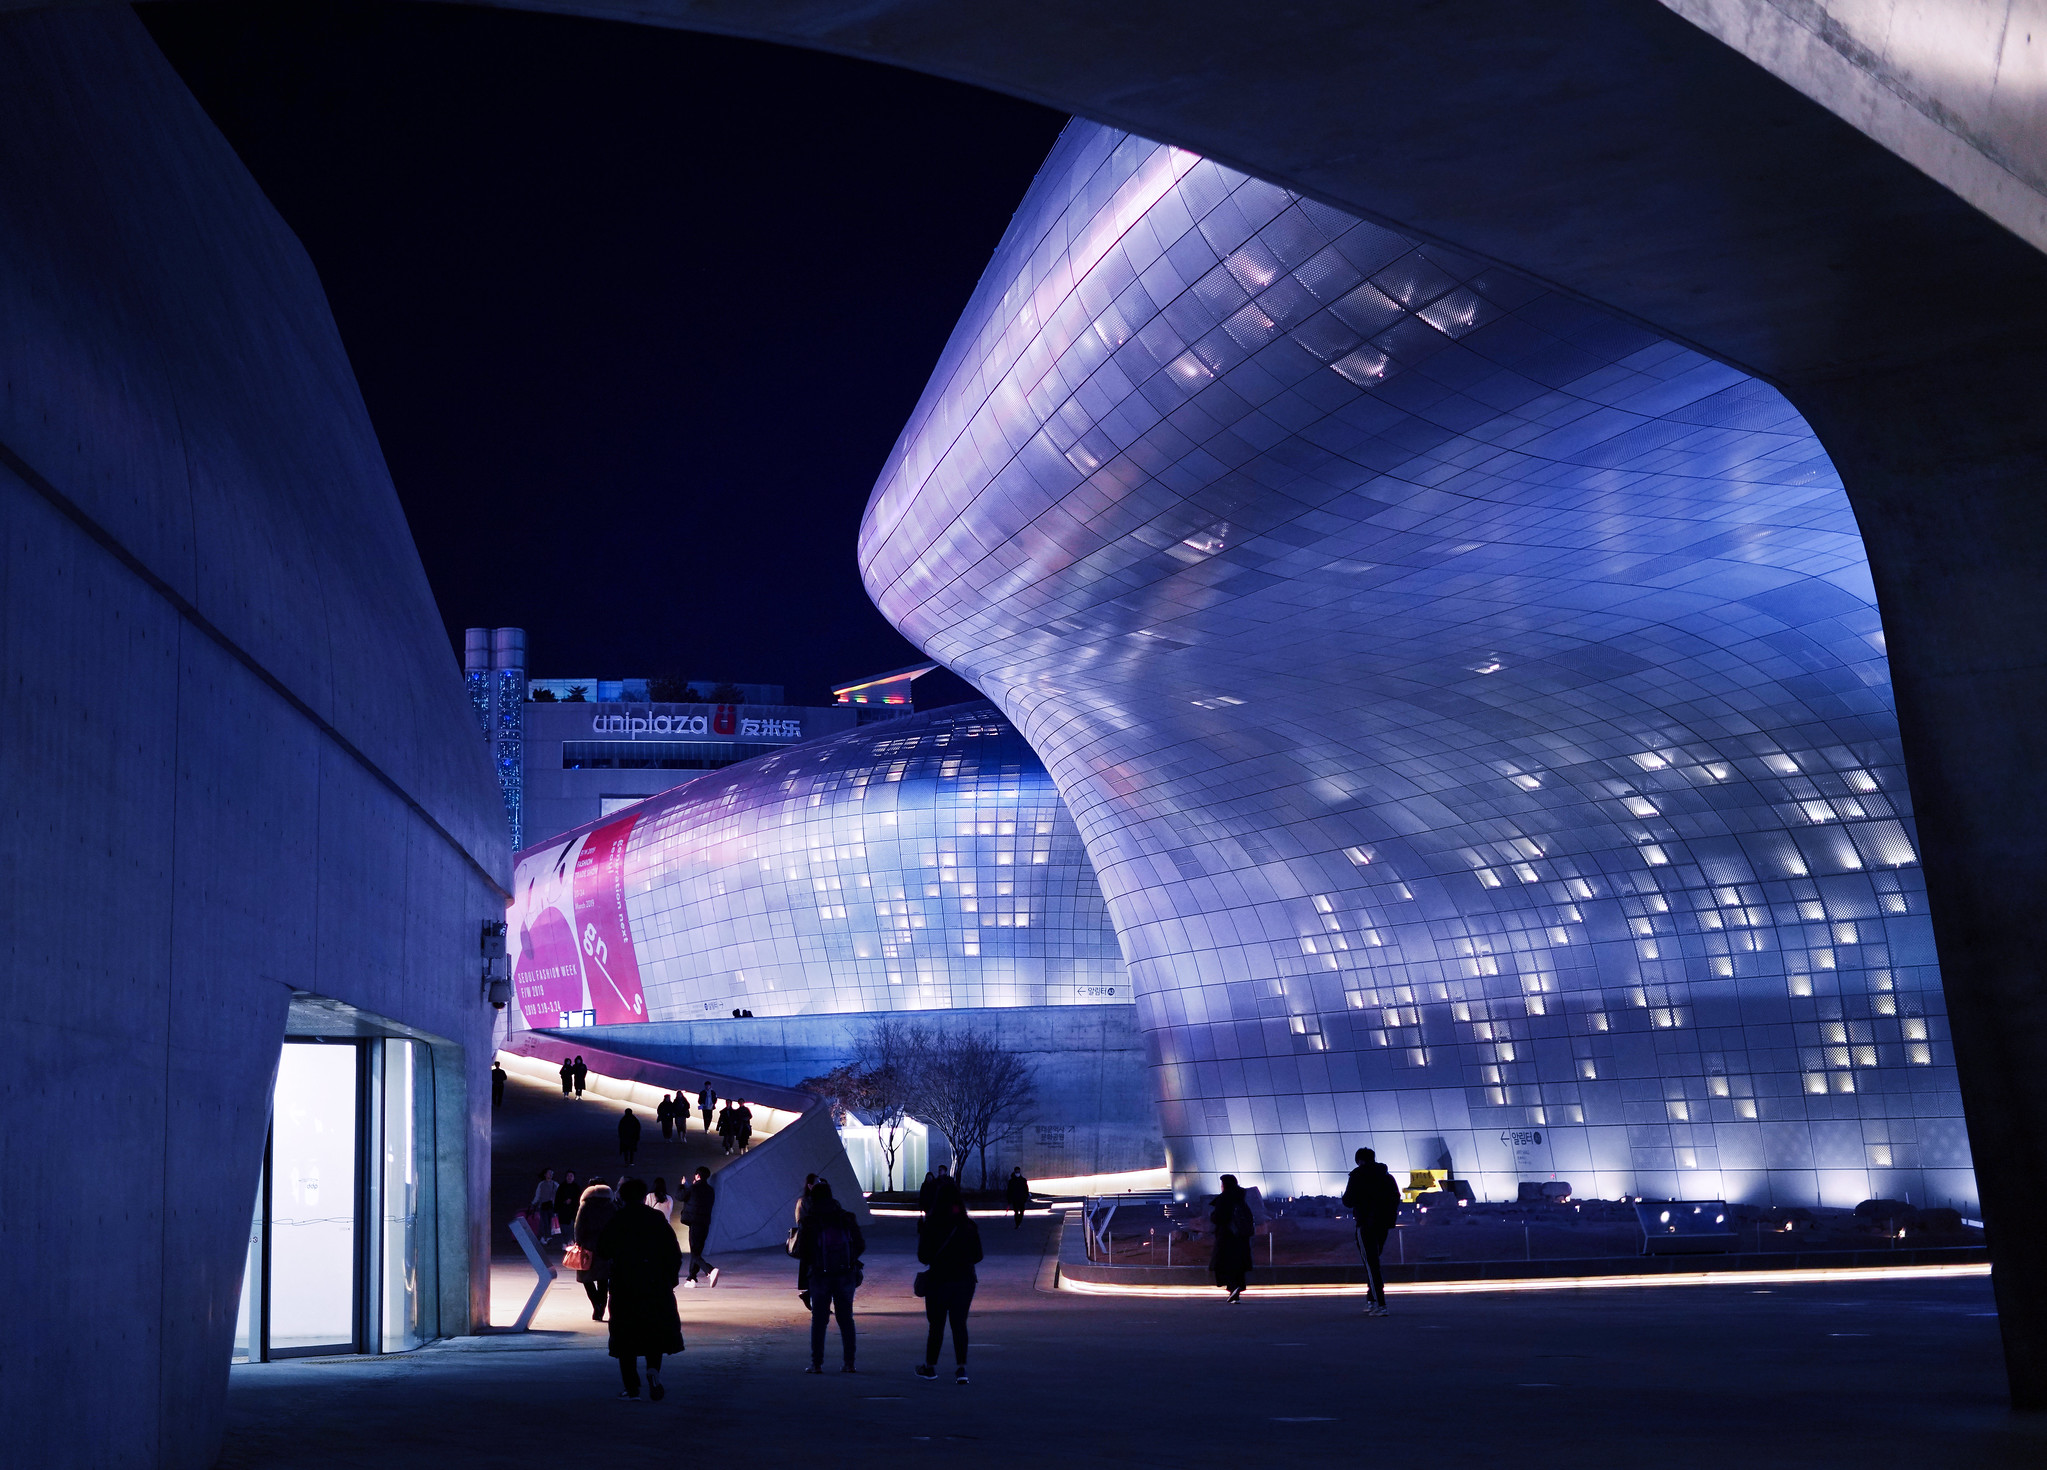 Dongdaemun design plaza ddp futuristic building synth wave